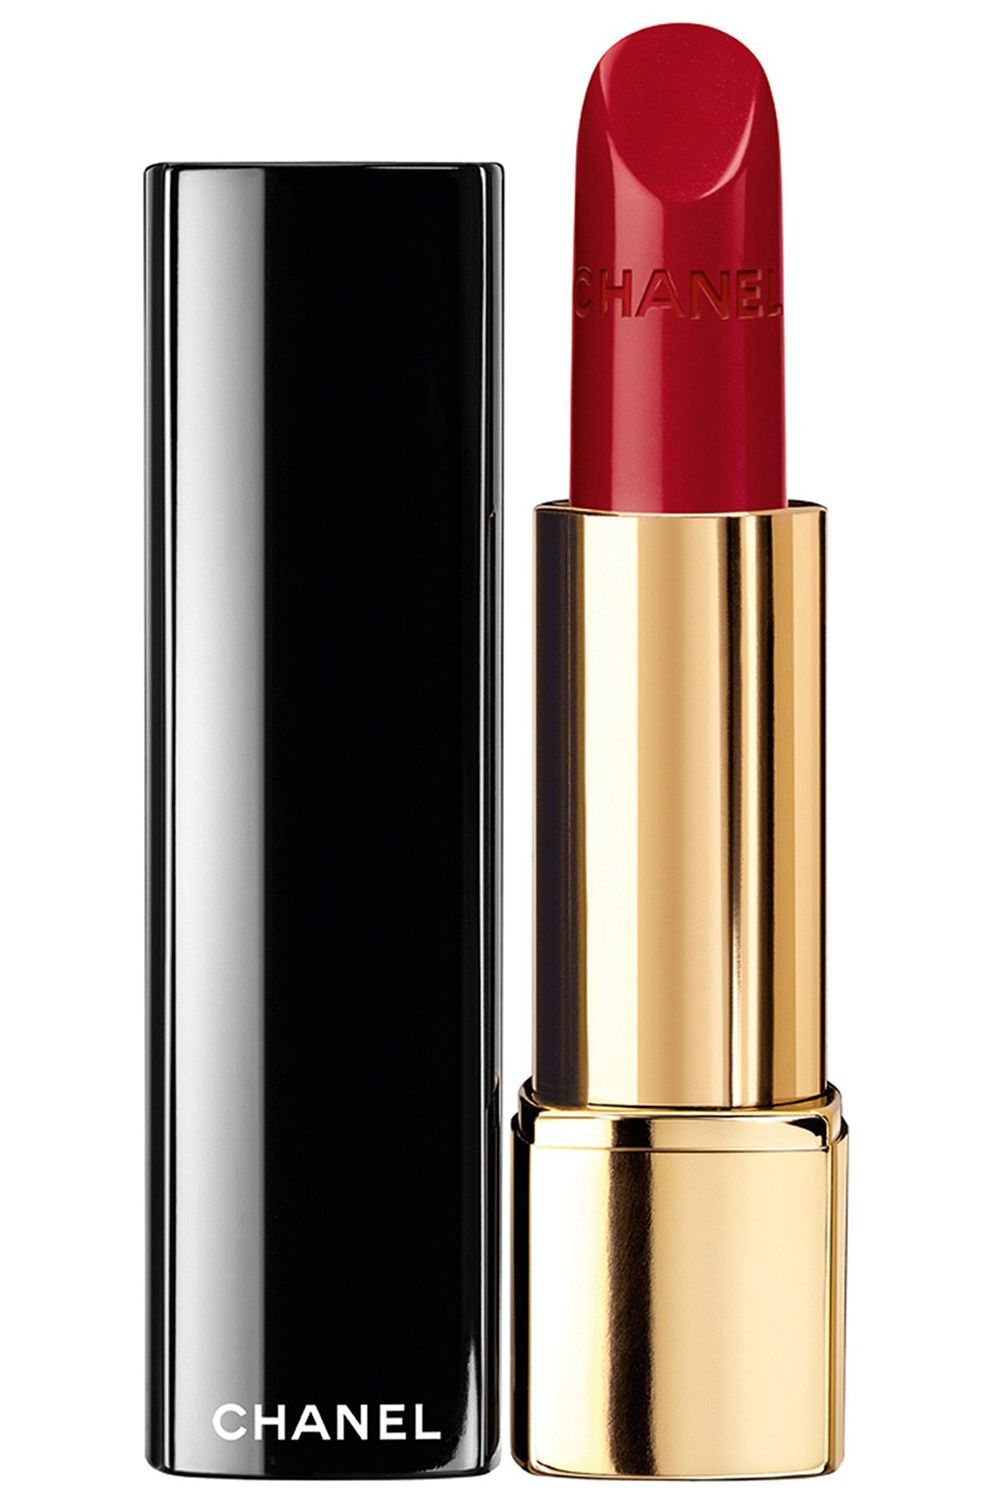 Chanel Red Lipstick Colors | www.imgkid.com - The Image ...